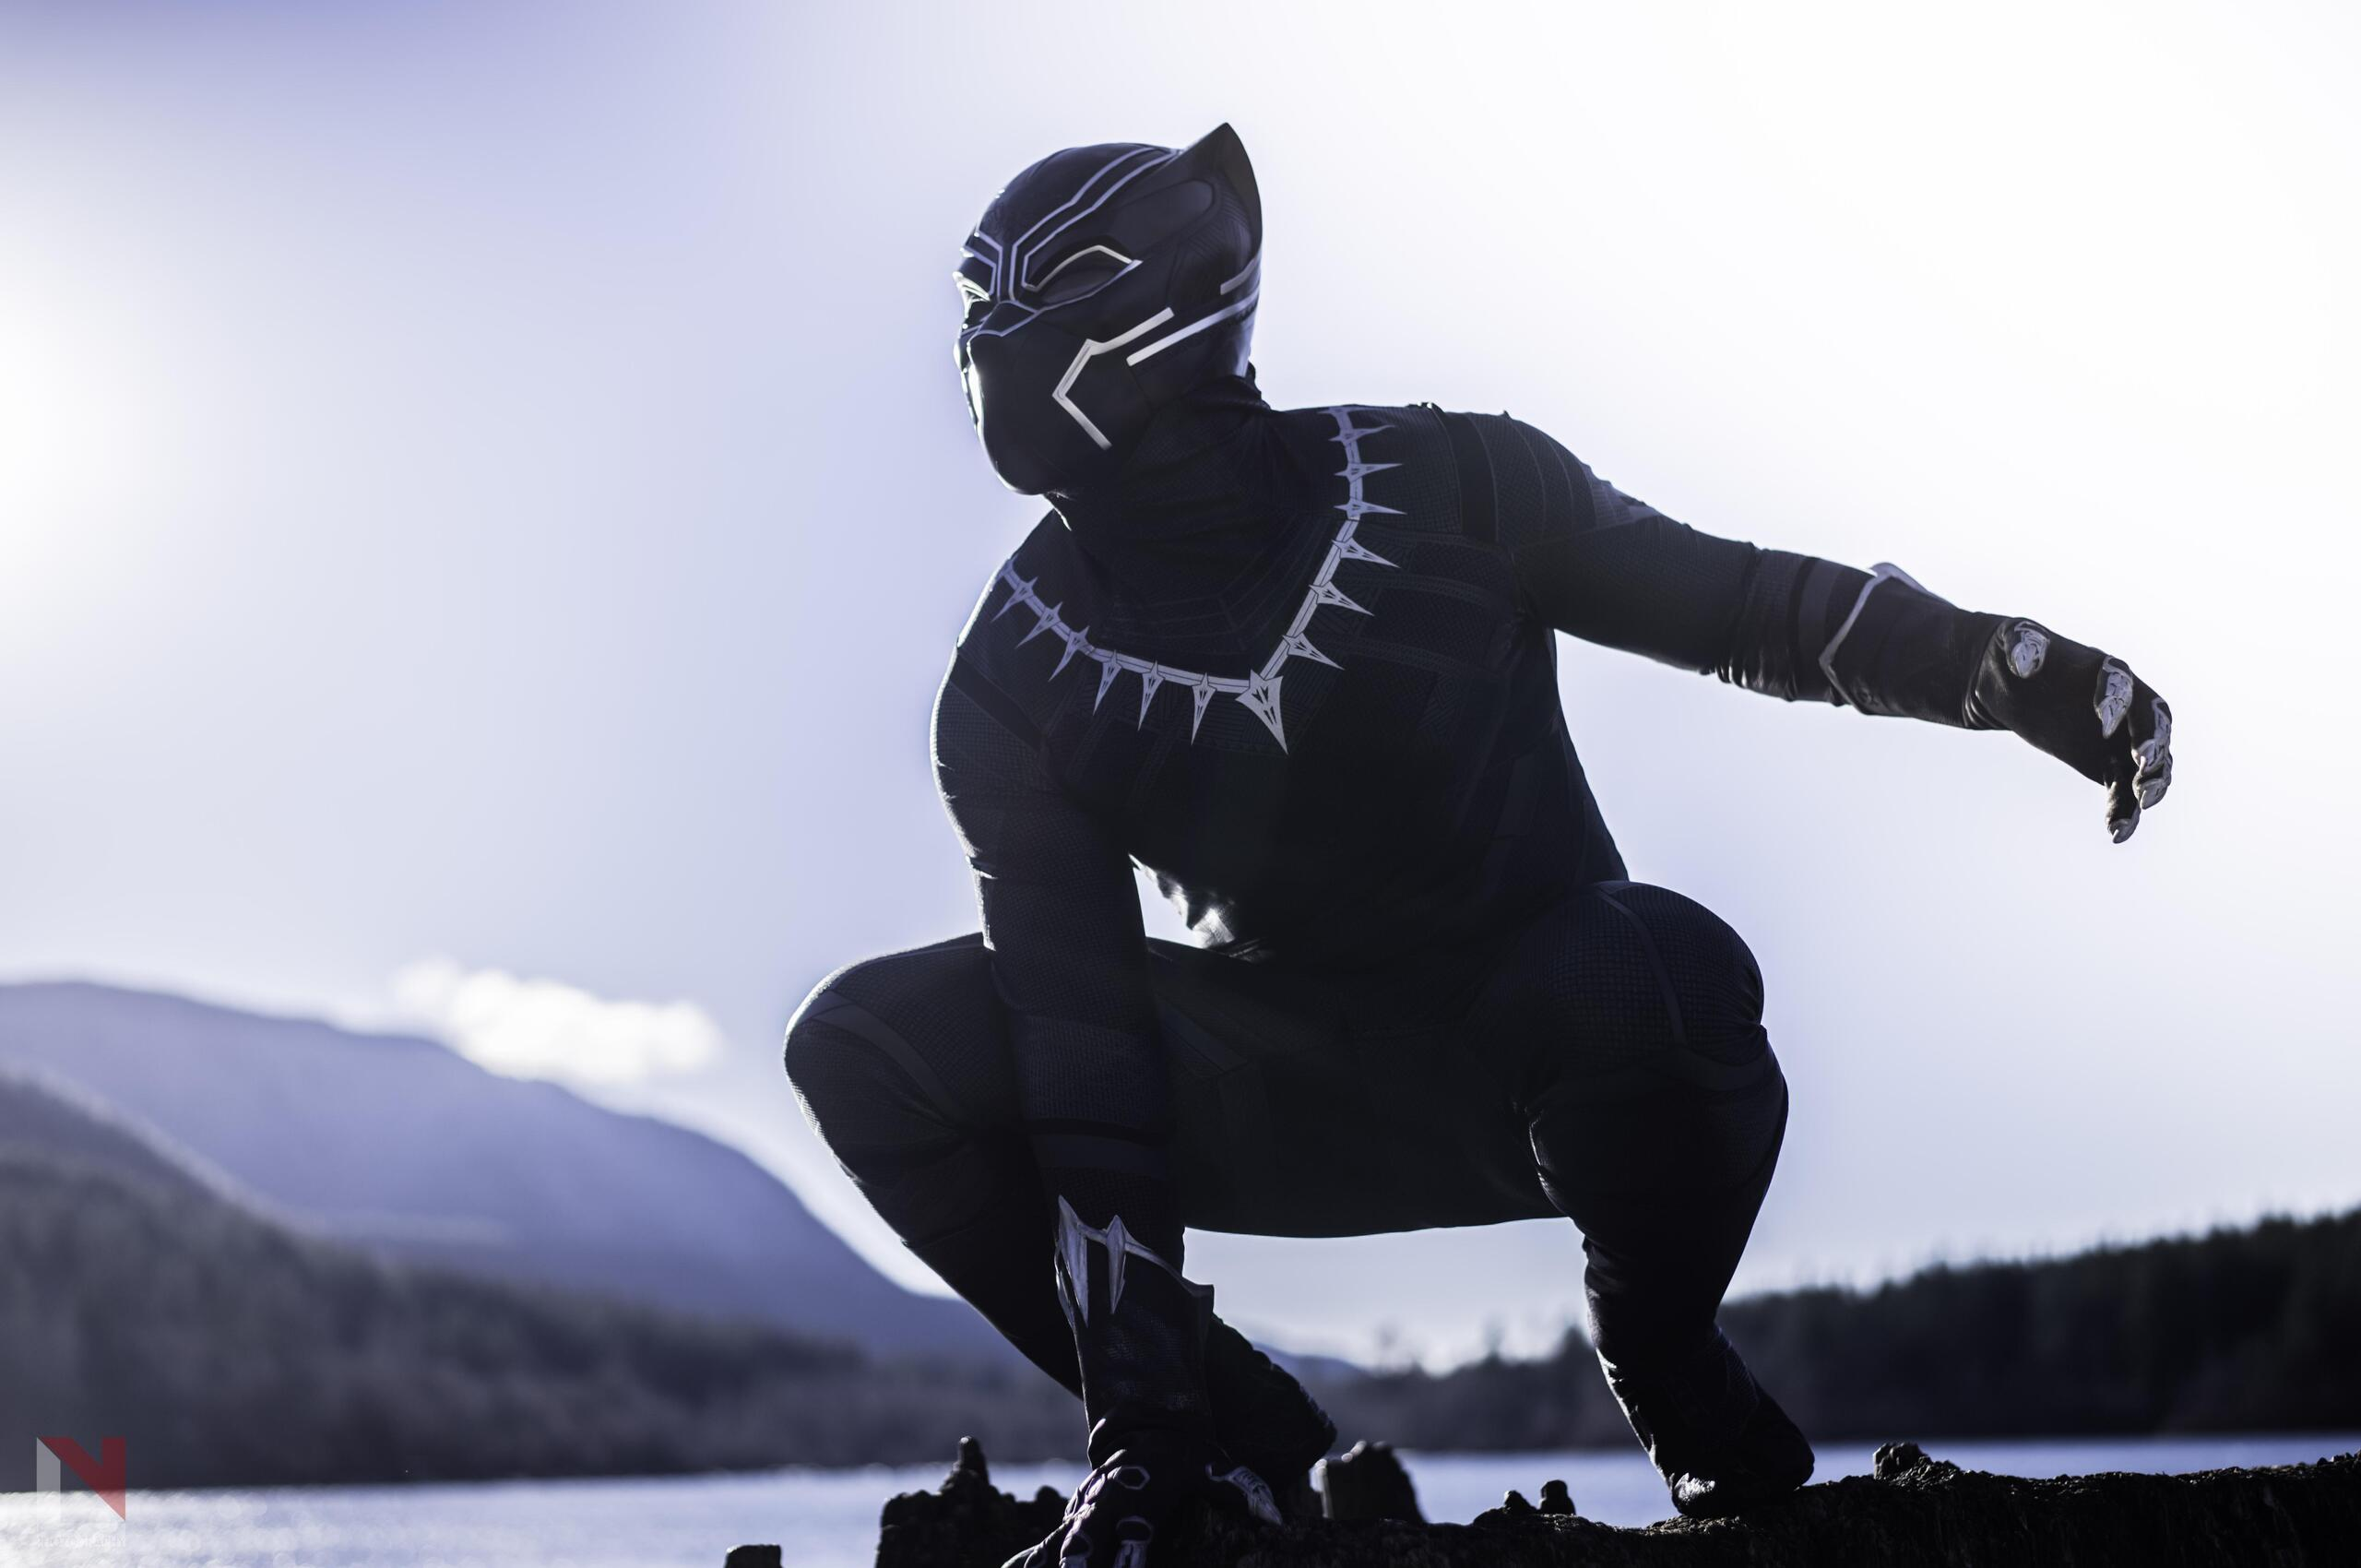 2560x1700 Black Panther The Protector Of Wakanda Chromebook Pixel Hd 4k Wallpapers Images Backgrounds Photos And Pictures